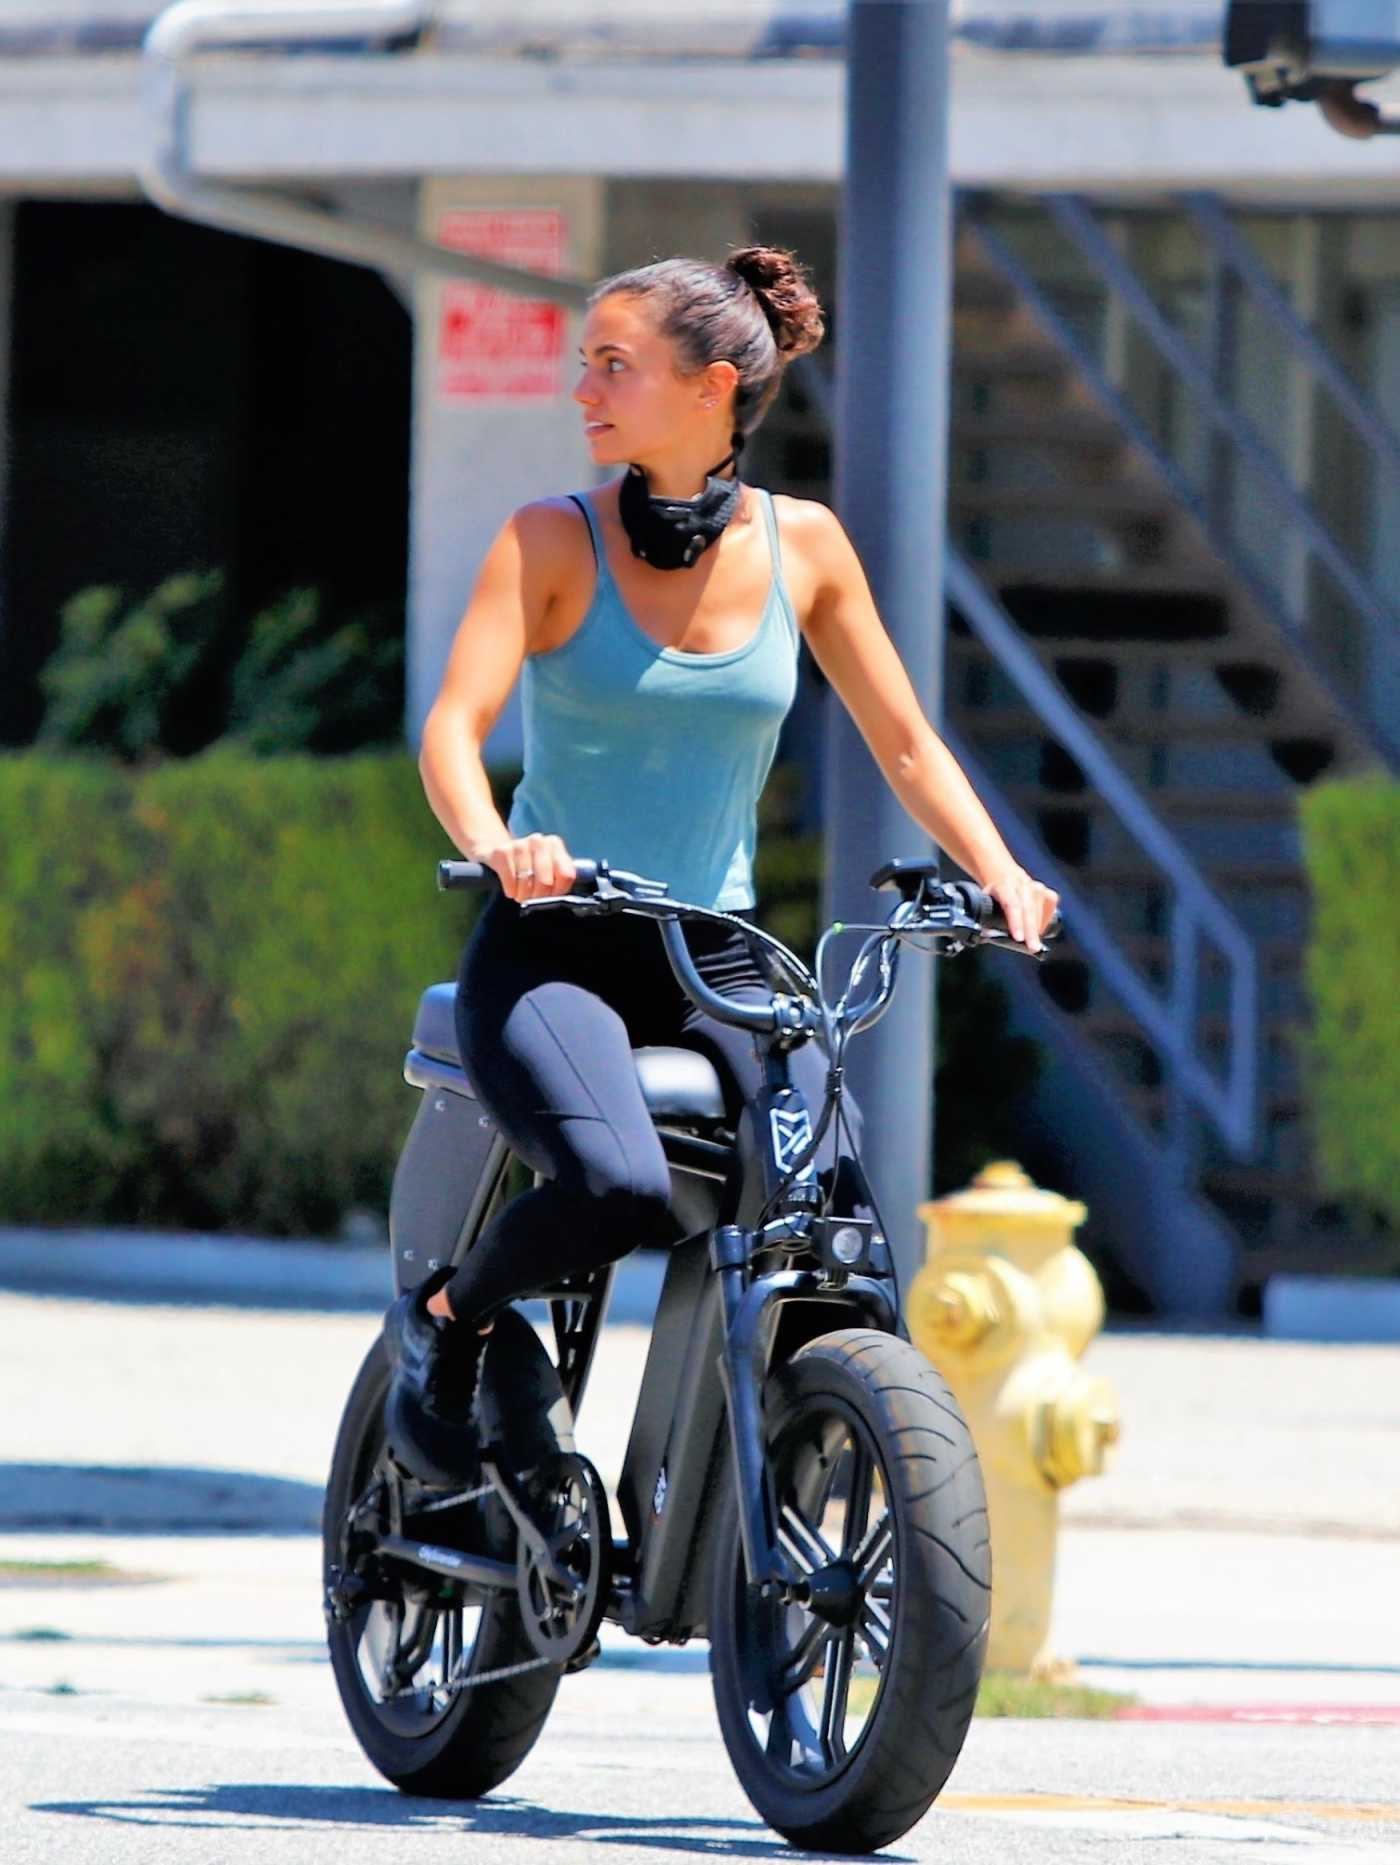 Hayley Erbert in a Light Blue Tank Top Does a Bike Ride Out with Derek Hough in Los Angeles 06/13/2020